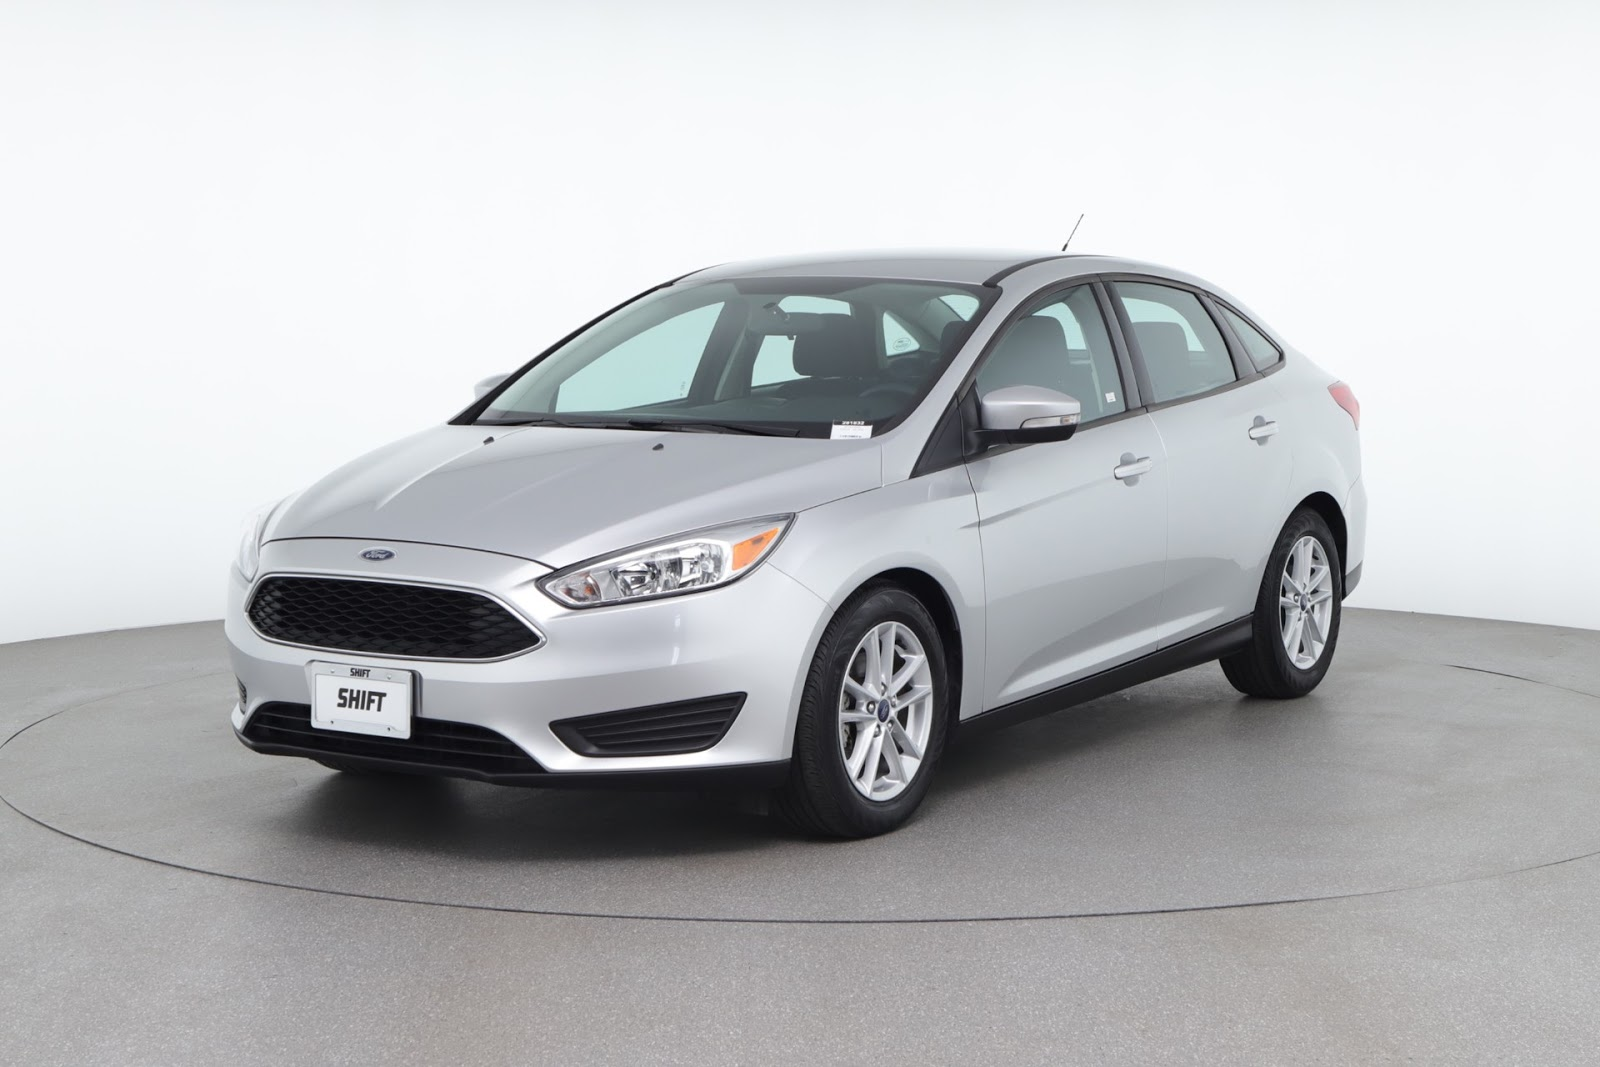 Ford Focus: The Only Guide You'll Need